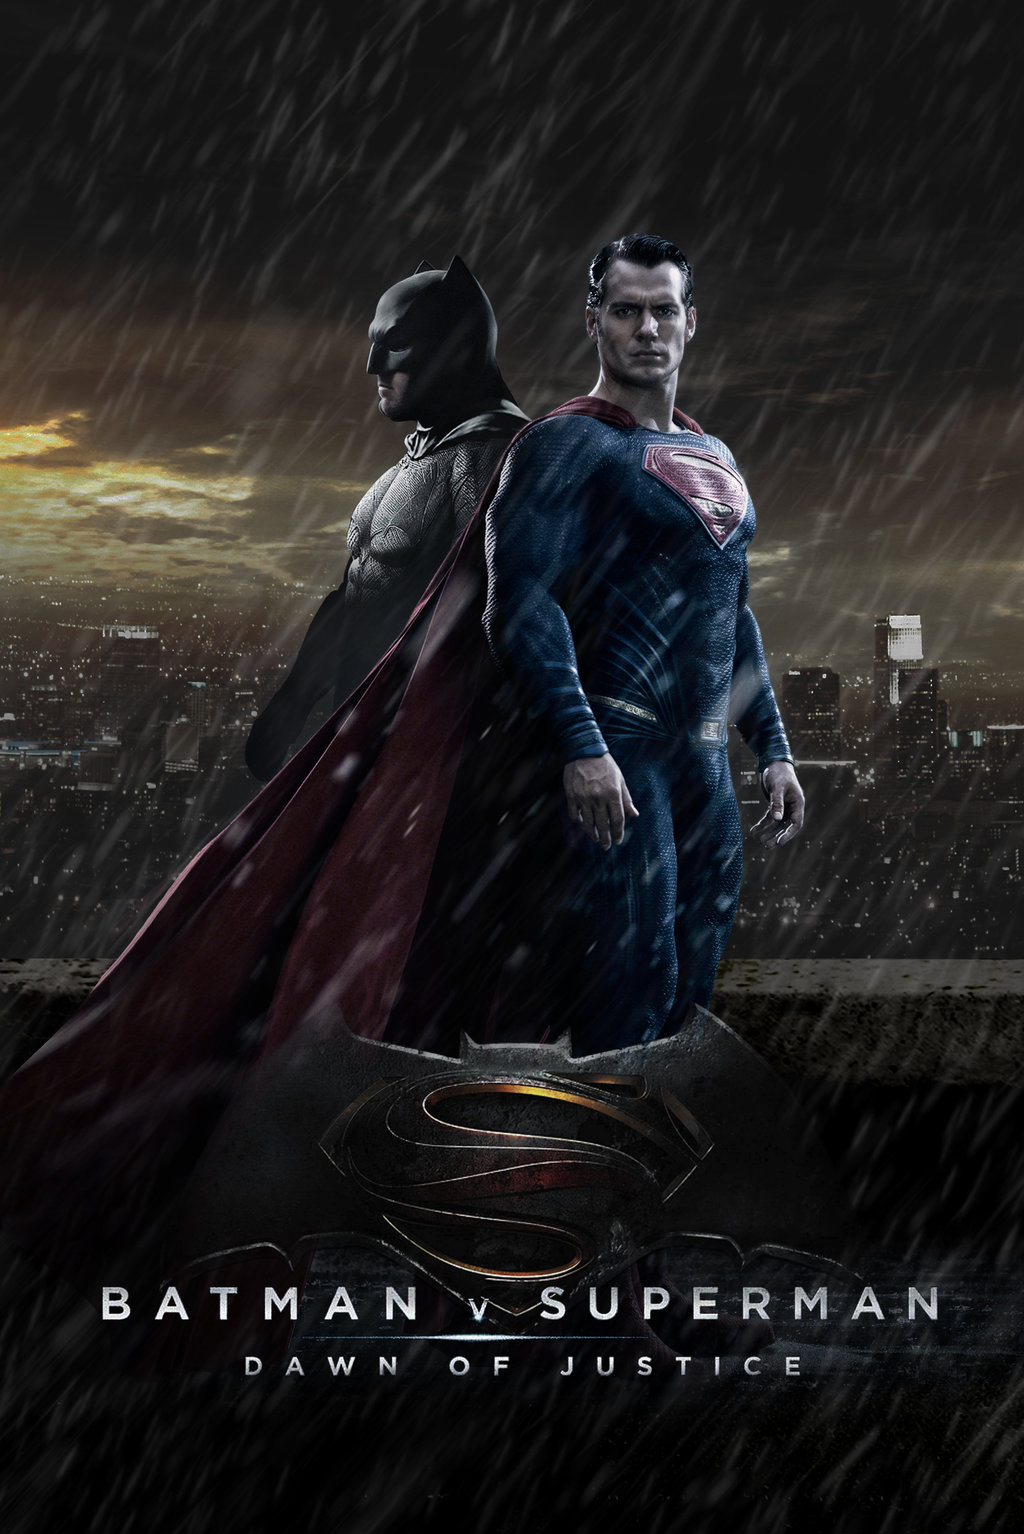 Batman Vs Superman Wallpaper Iphone Pic Mch044191 Dzbc Org